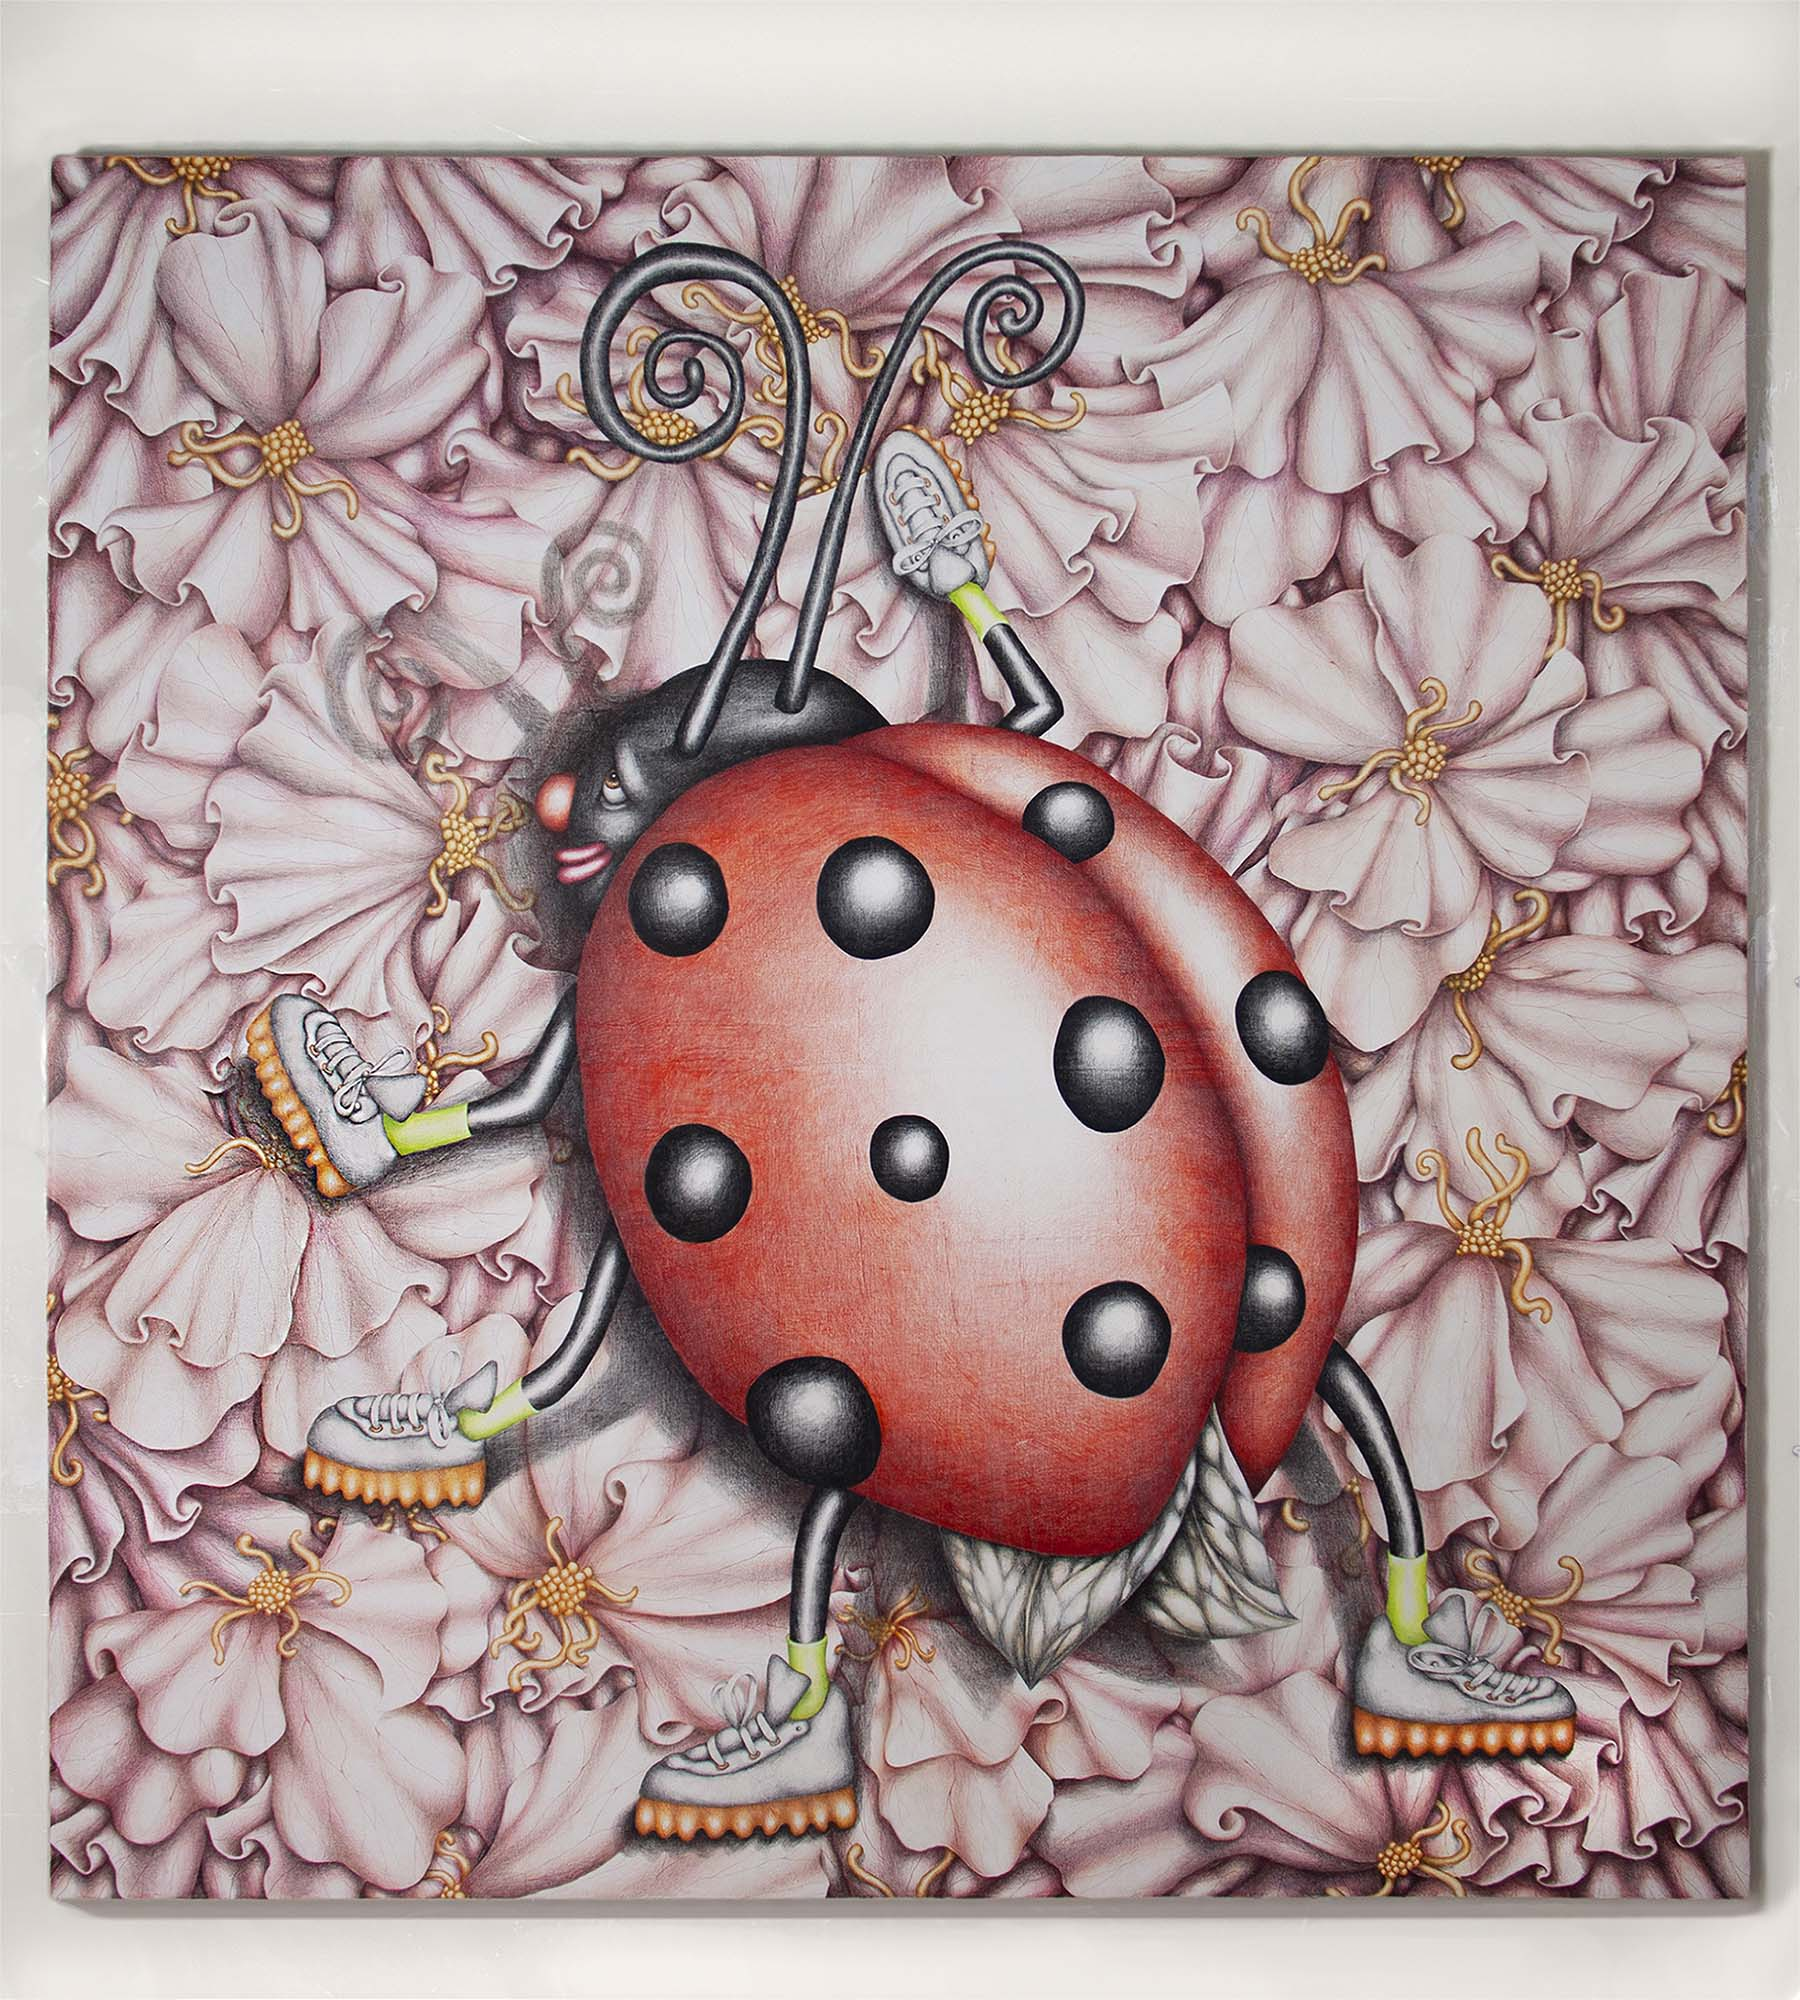 Samantha Rosenwald, Beep the Ladybug Messing Everything Up, 2019, colored pencil on canvas, 60x62